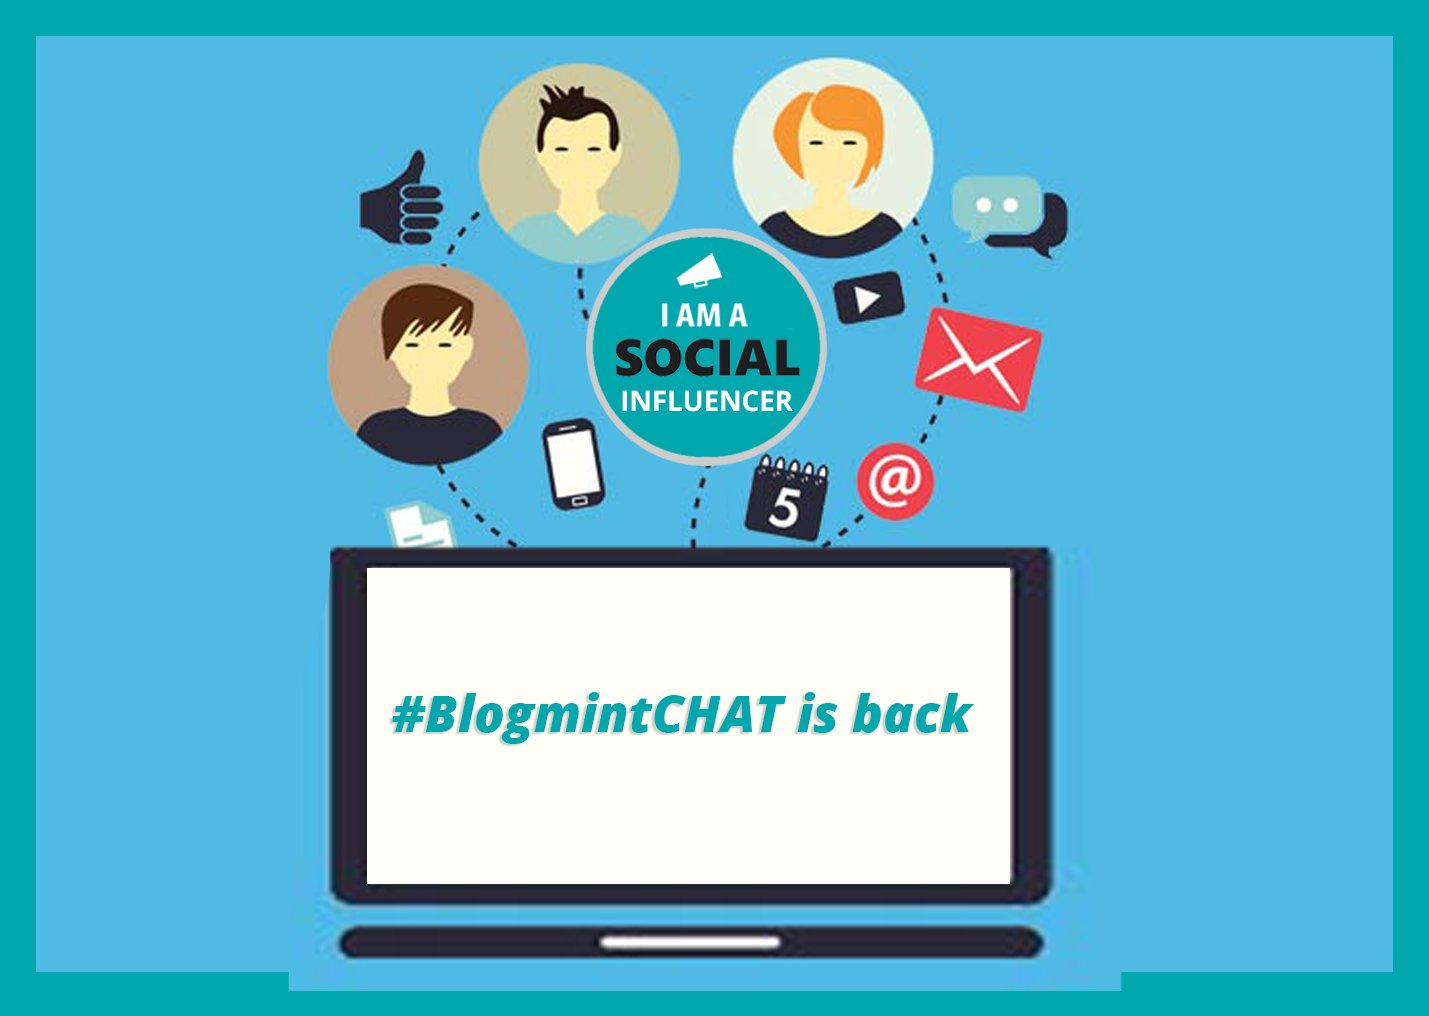 Time to Interact and Improve! #BlogmintCHAT is back. Stay tuned for more updates. #InfluencerMarketing #TwitterChat https://t.co/S4P3wt71Ic